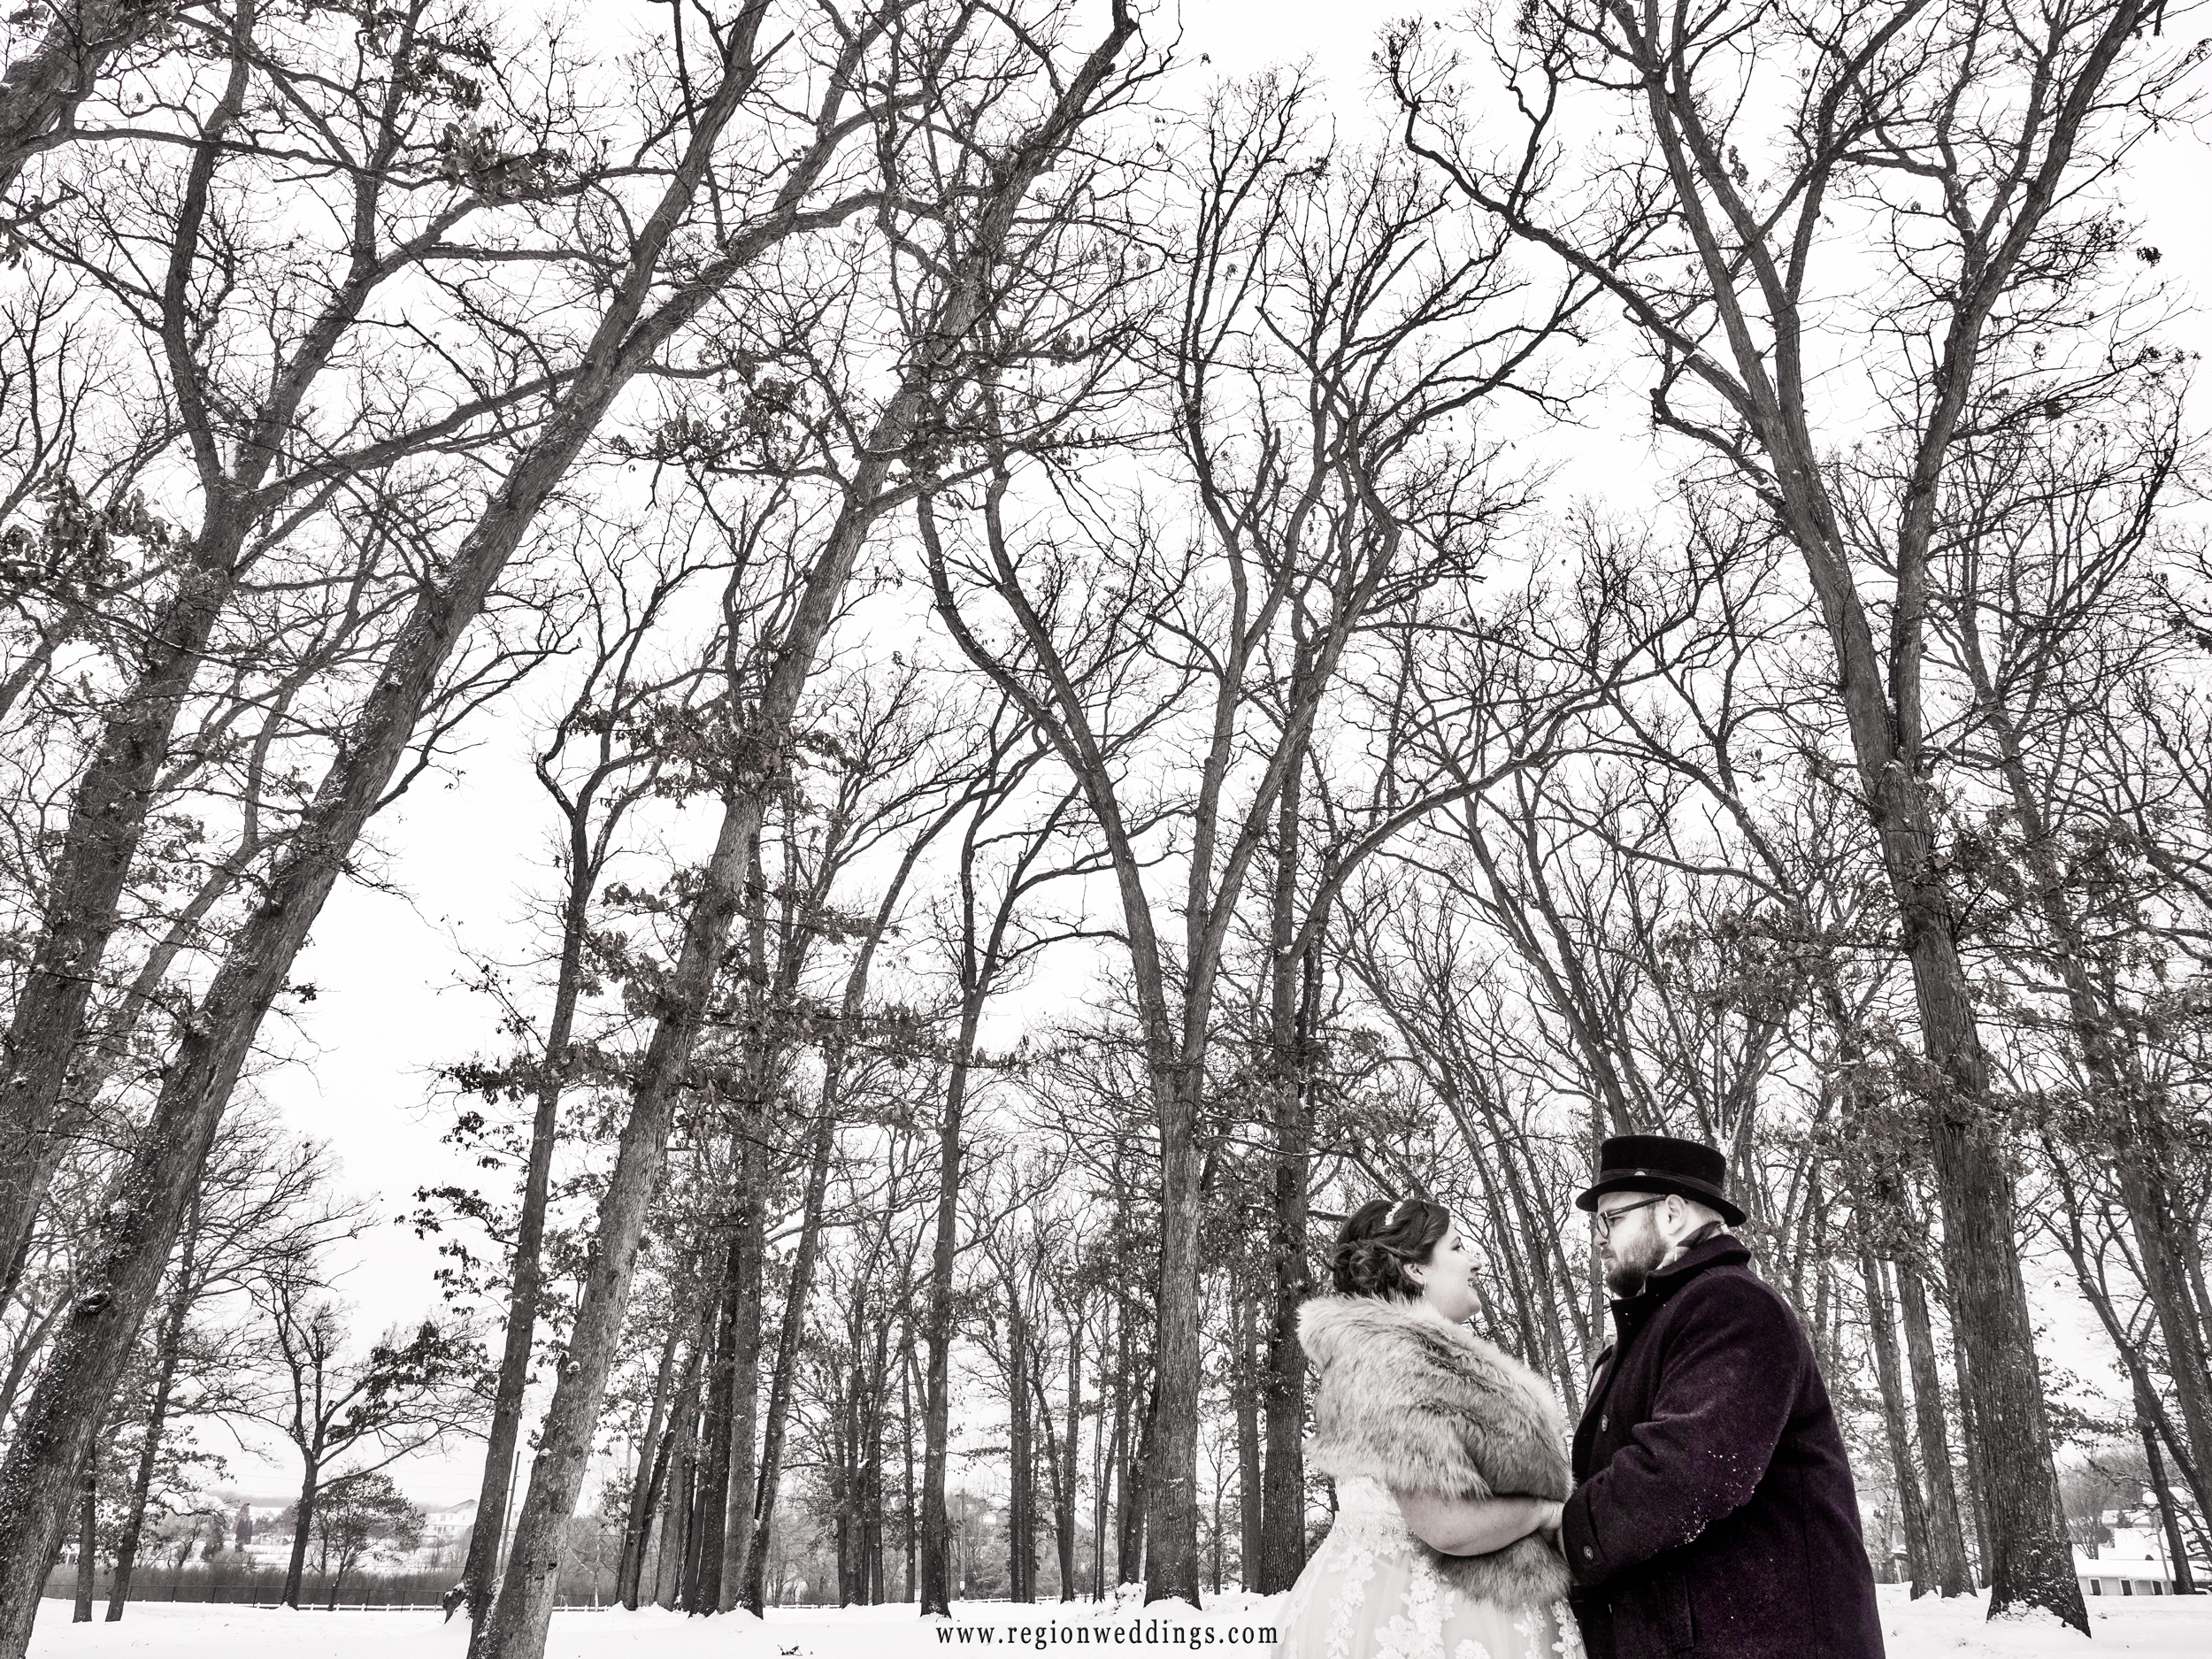 Bride and groom at Lake County Fairgrounds among snow covered trees.